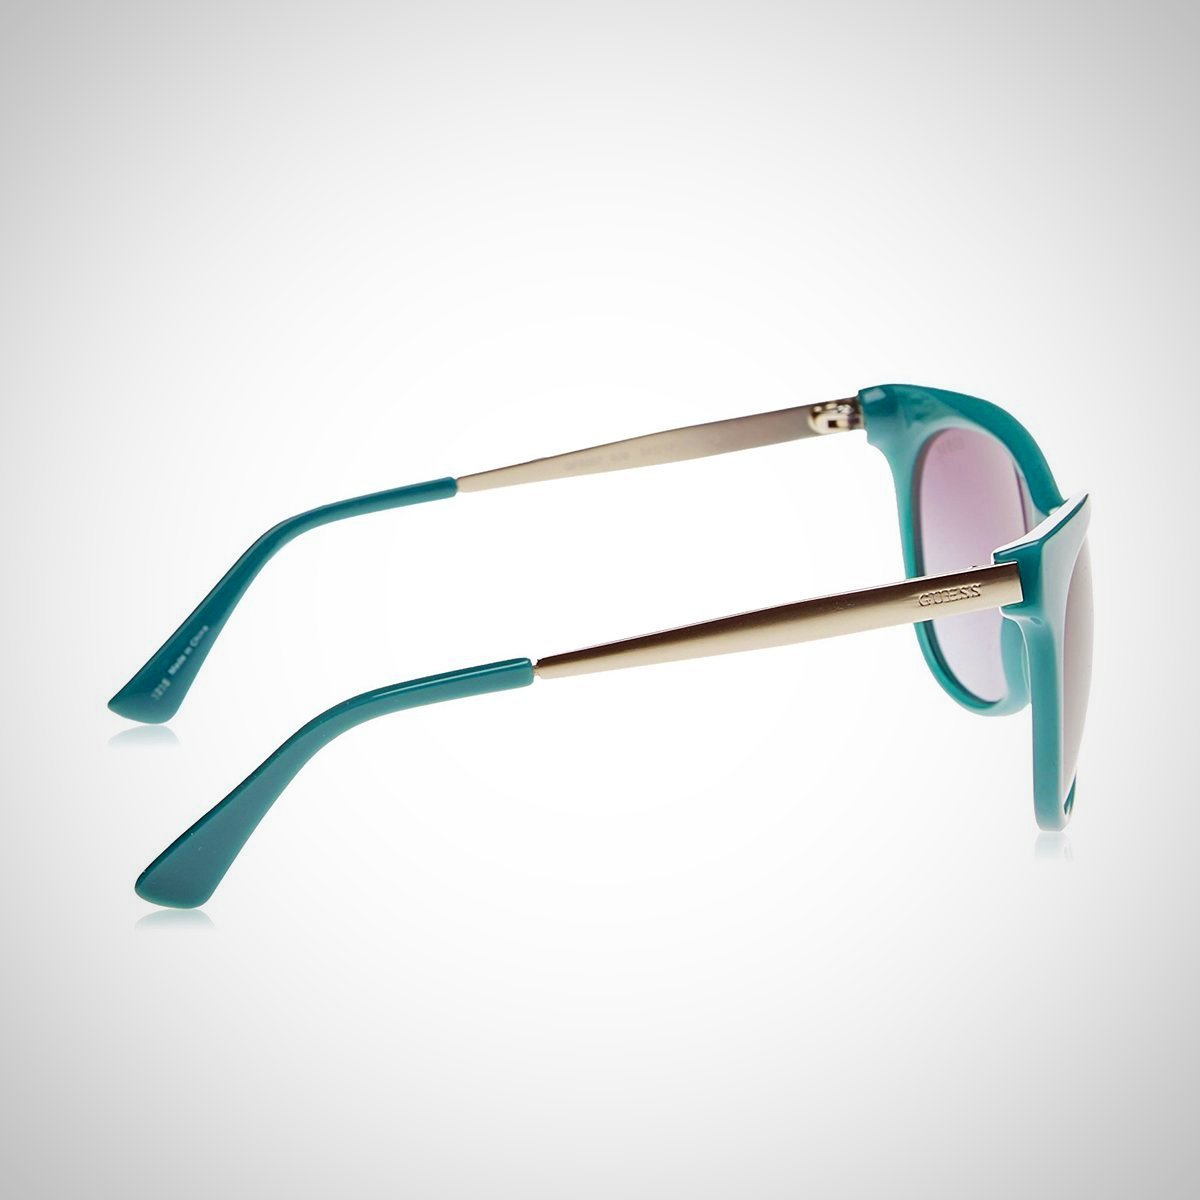 Guess GF6007 92B 54 Ladies Turquoise Sunglasses